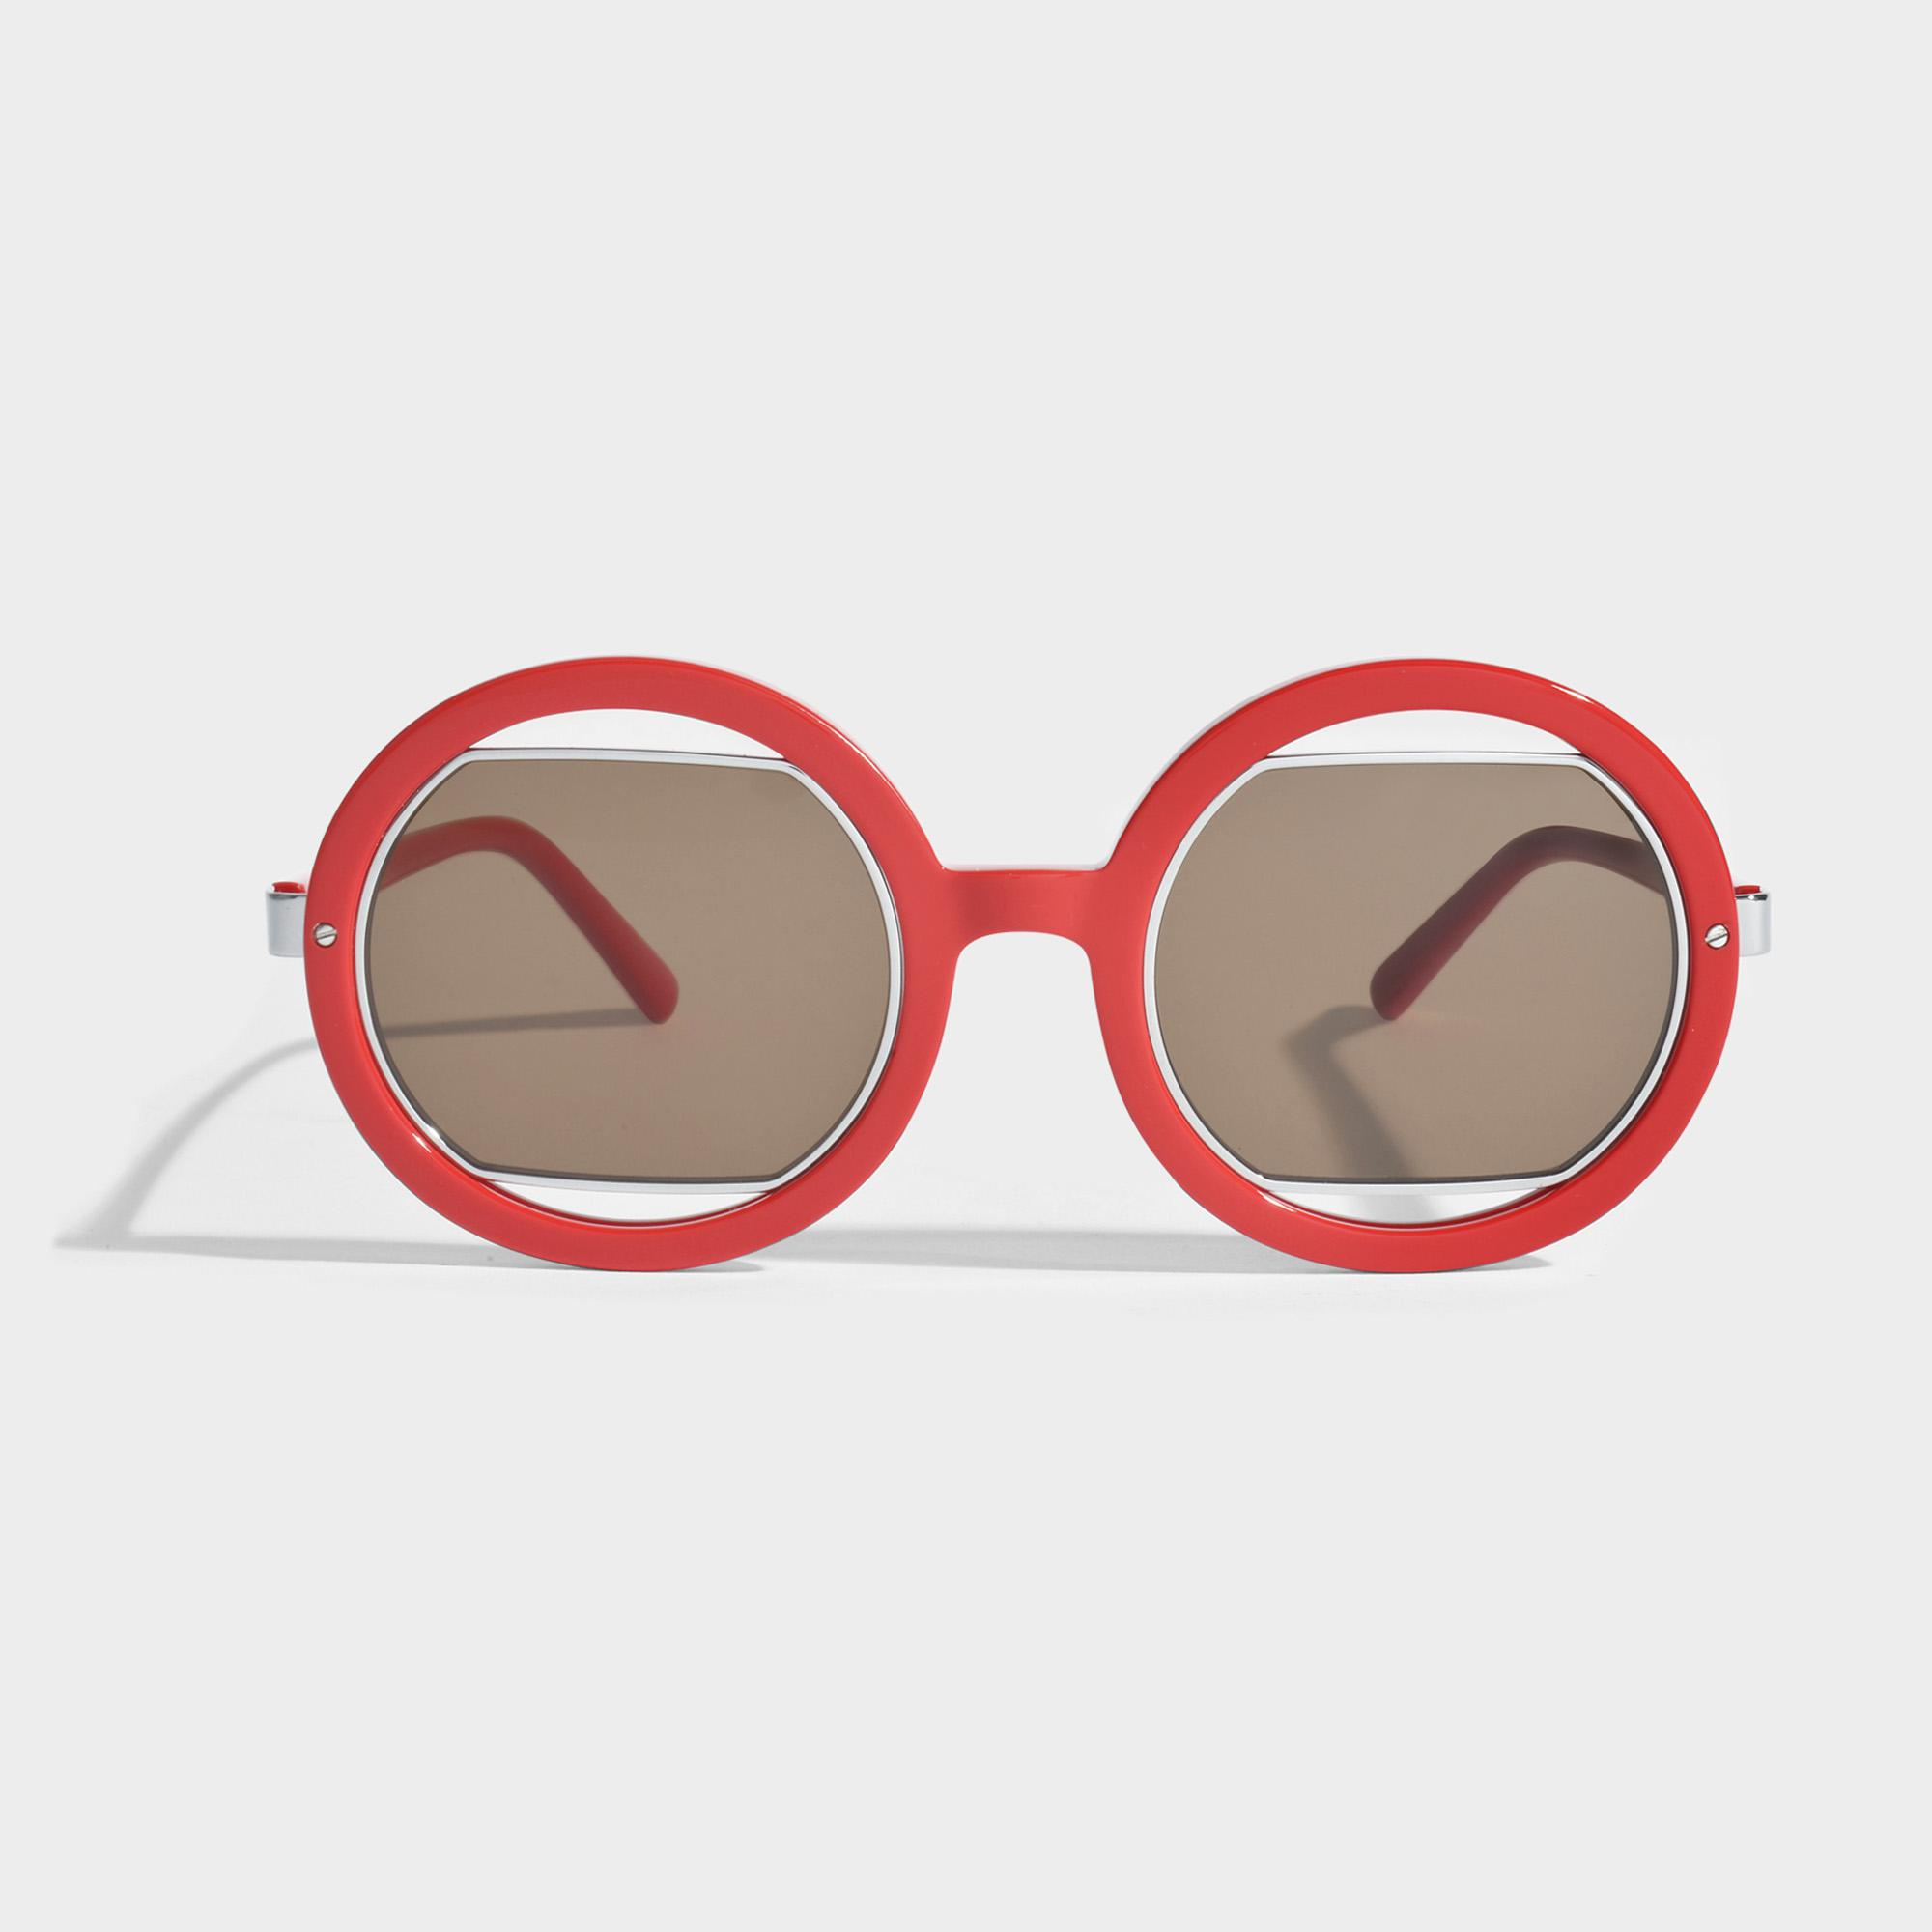 7d970d06d8c Lyst - Marni Show Round Sunglasses In Coral Acetate And Metal